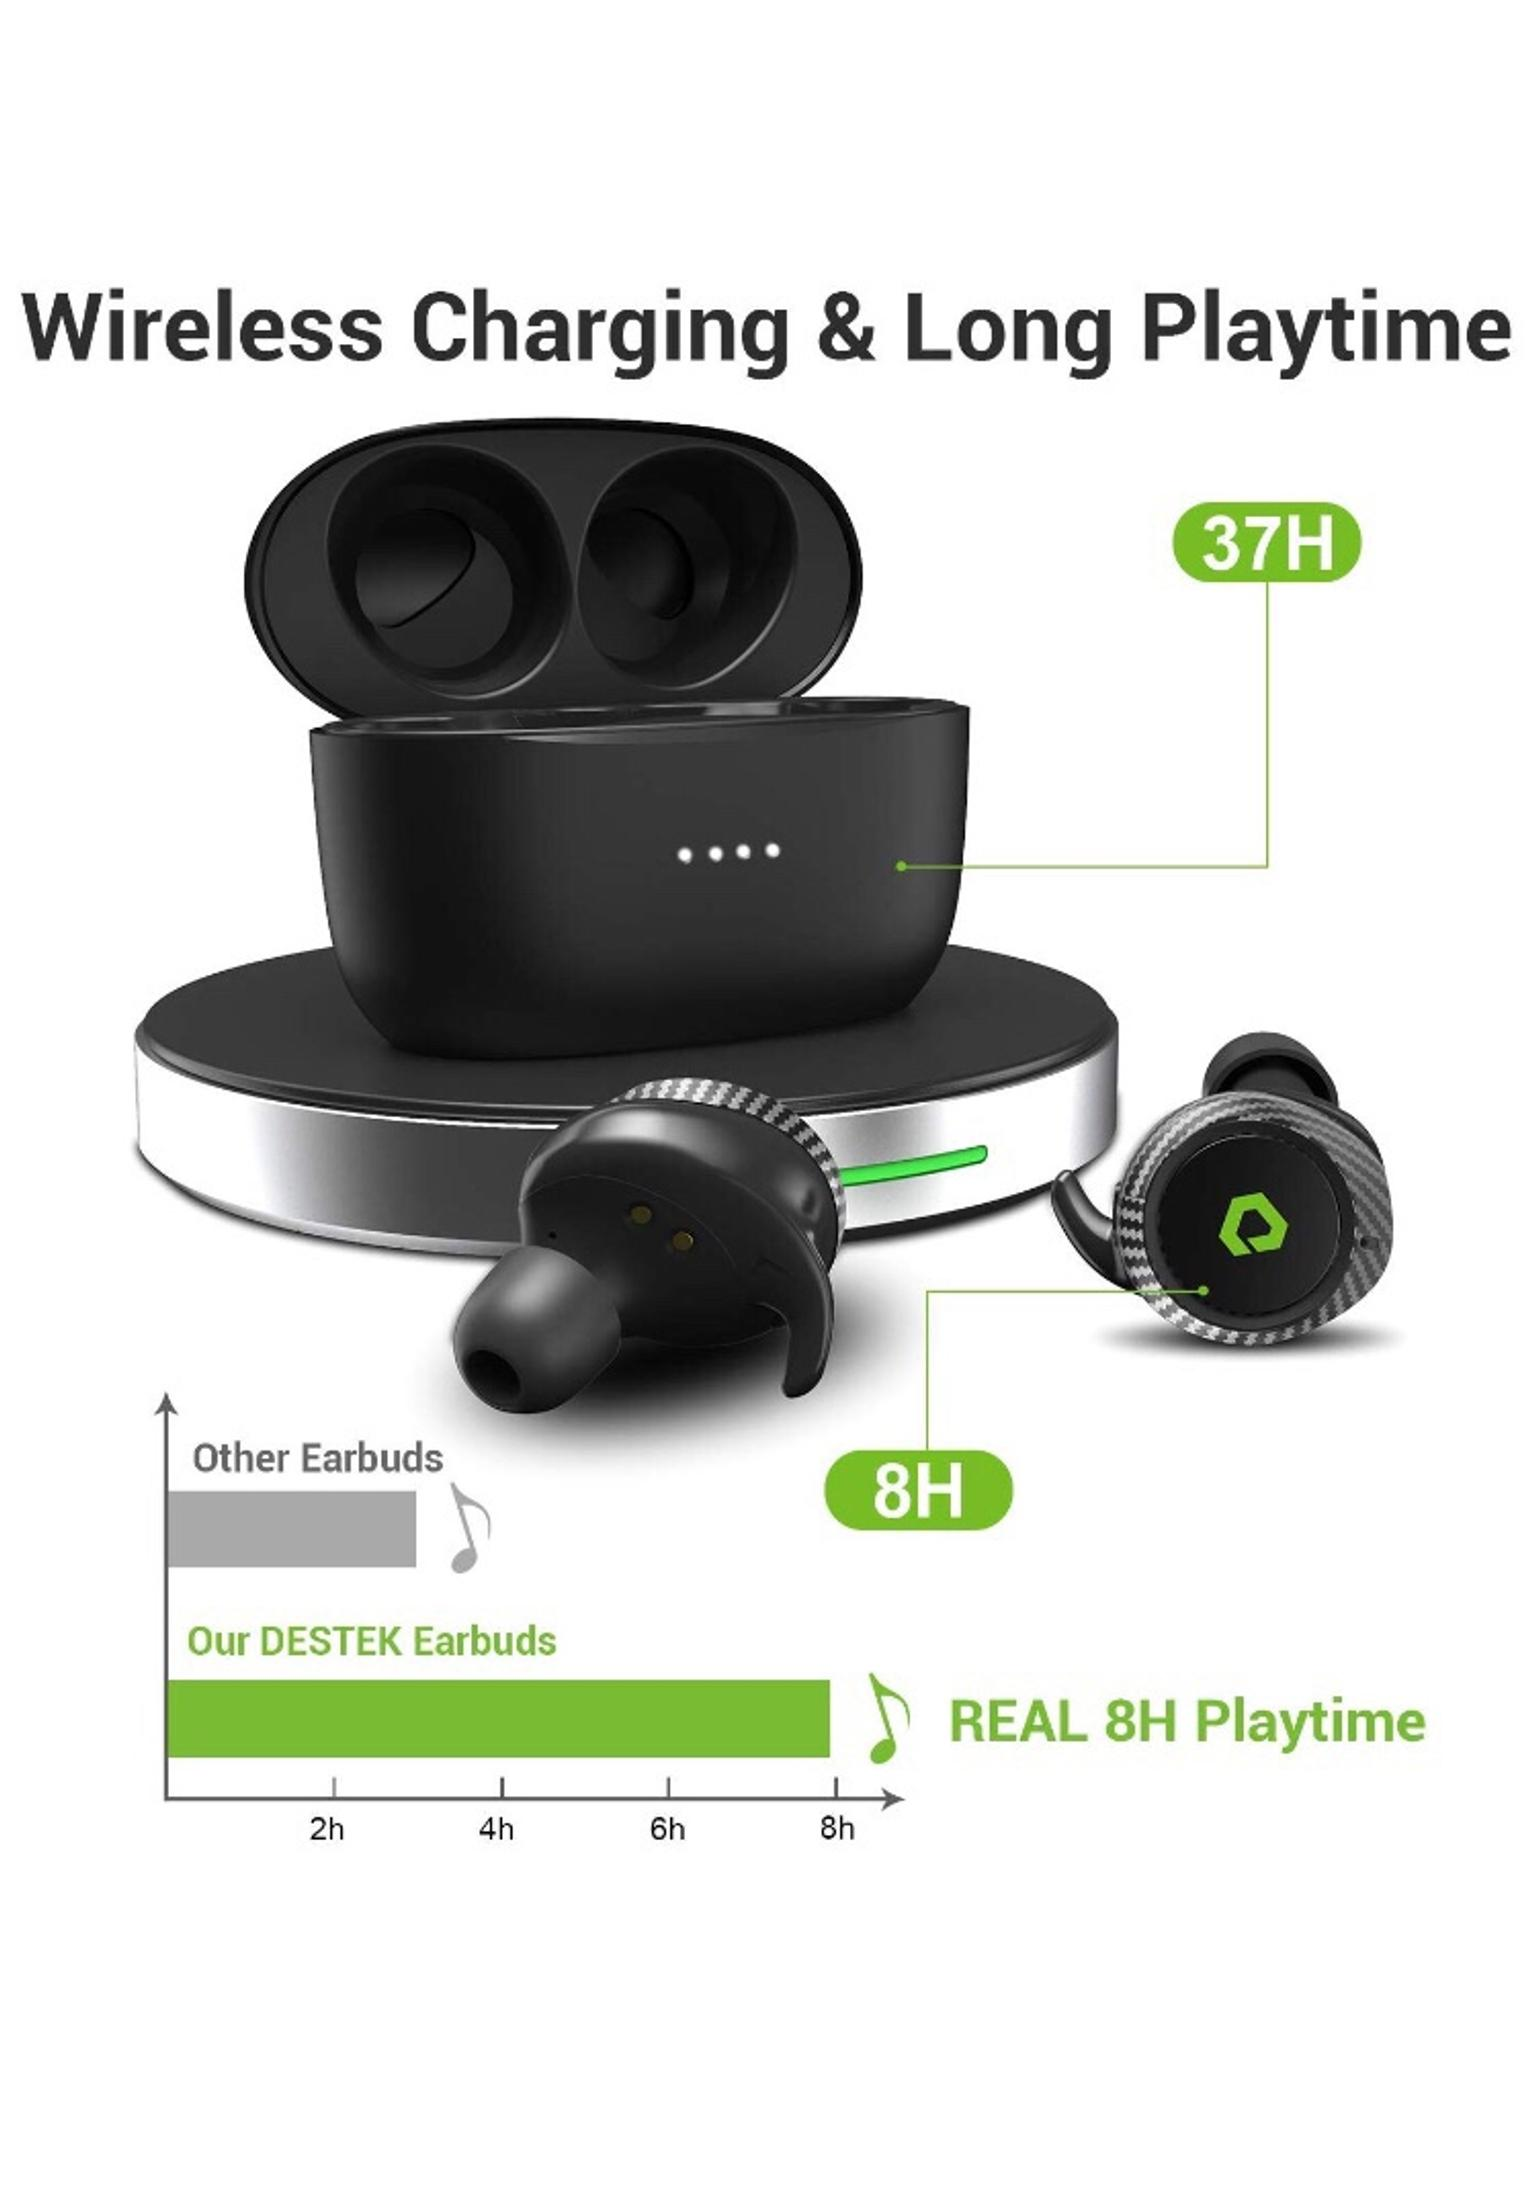 Black Wireless Earbuds,Bluetooth Headphones 5.0 Deep Bass HiFi Stereo Sound Earphones 37H Playtime with Charging Case and Built in Mic for Sports Running